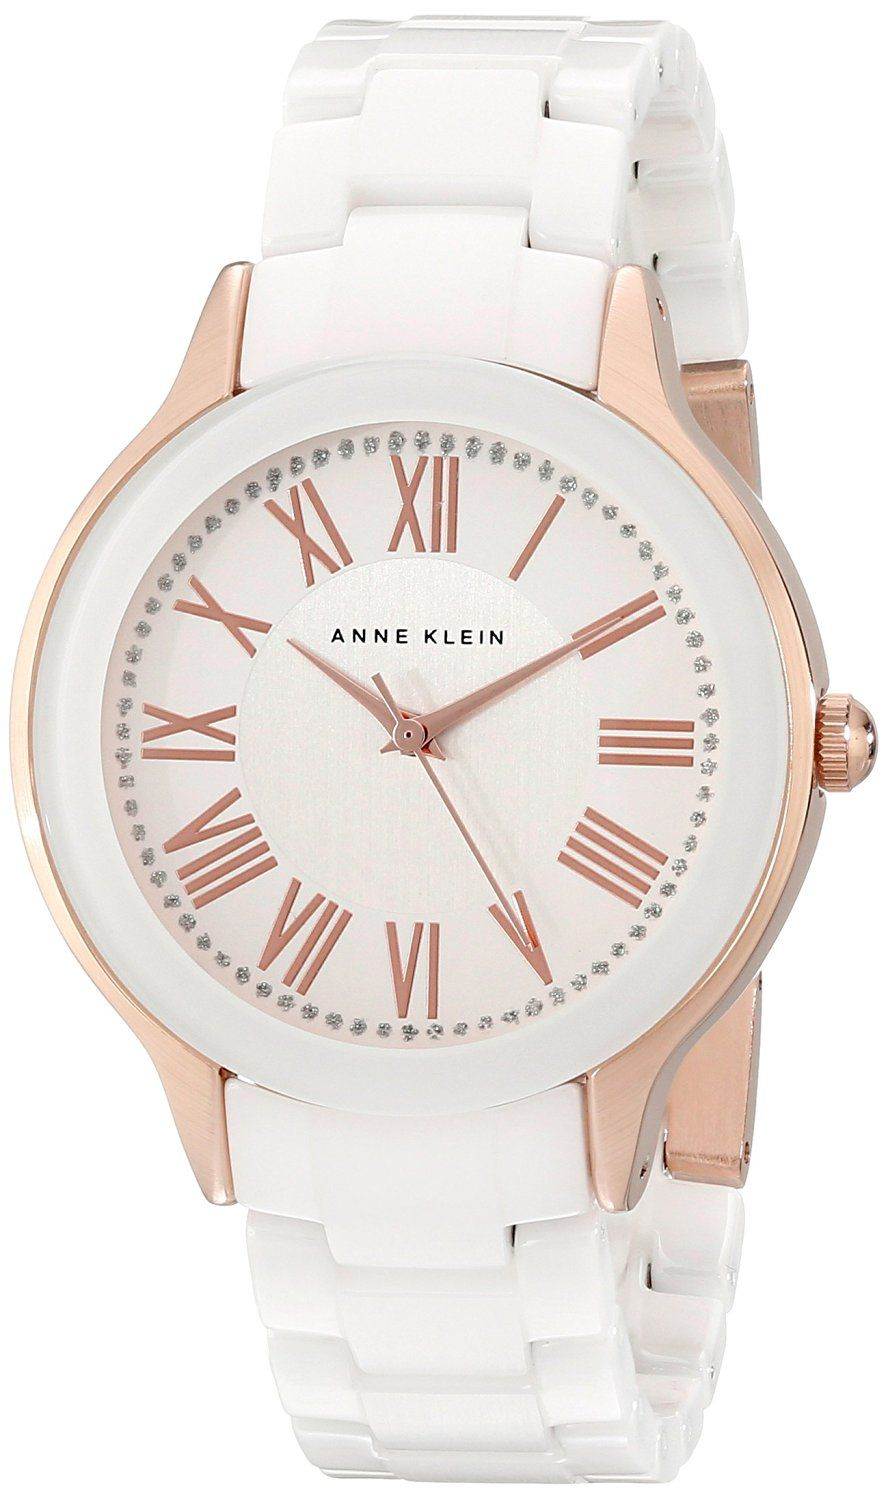 Anne Klein Women's AK/1948WTRG Rose Gold-Tone and White Ceramic Bracelet Watch >>> Click image to review more details.